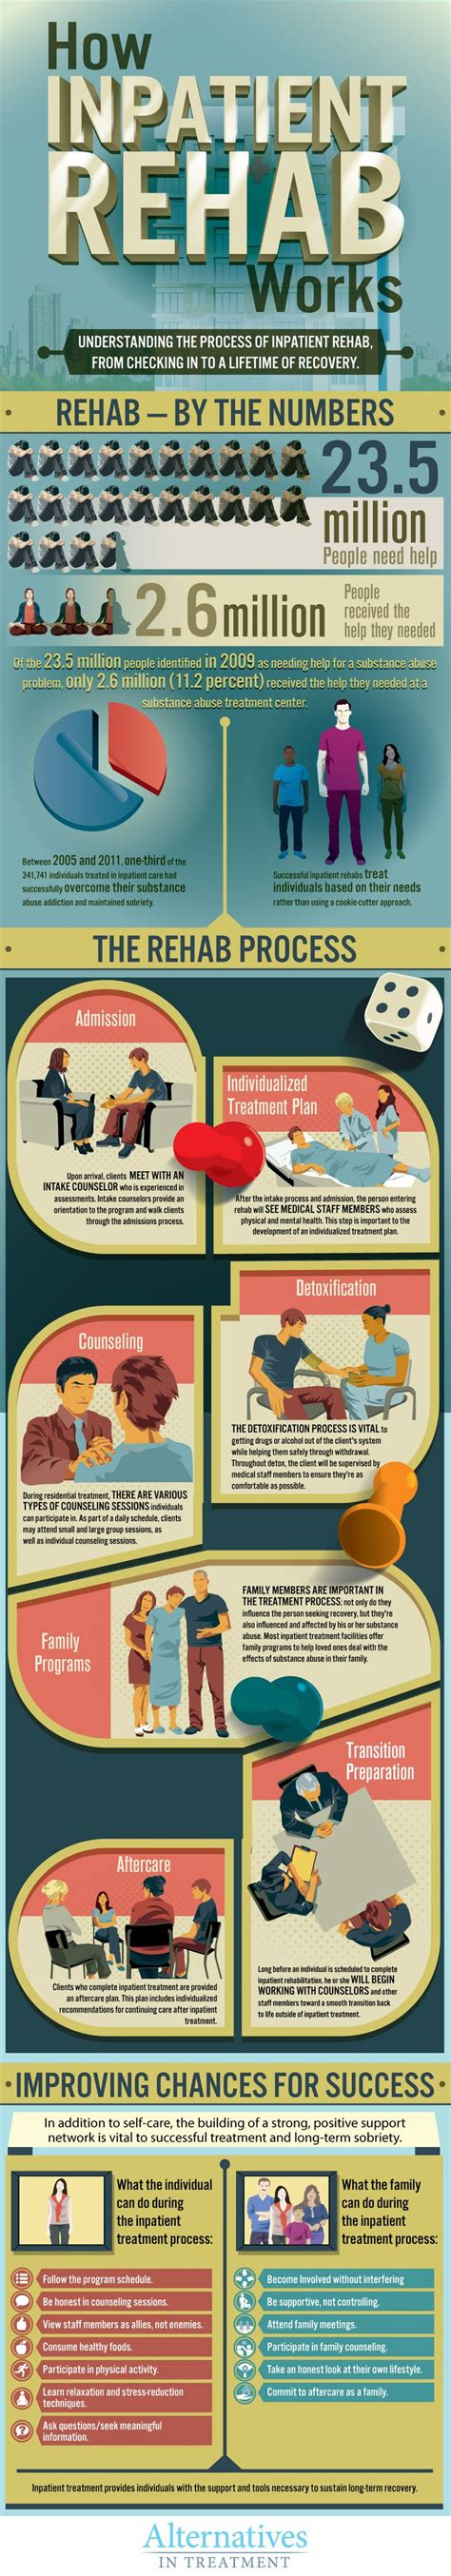 Term Psych Medication Detox California by Best 25 Substance Abuse Treatment Ideas On